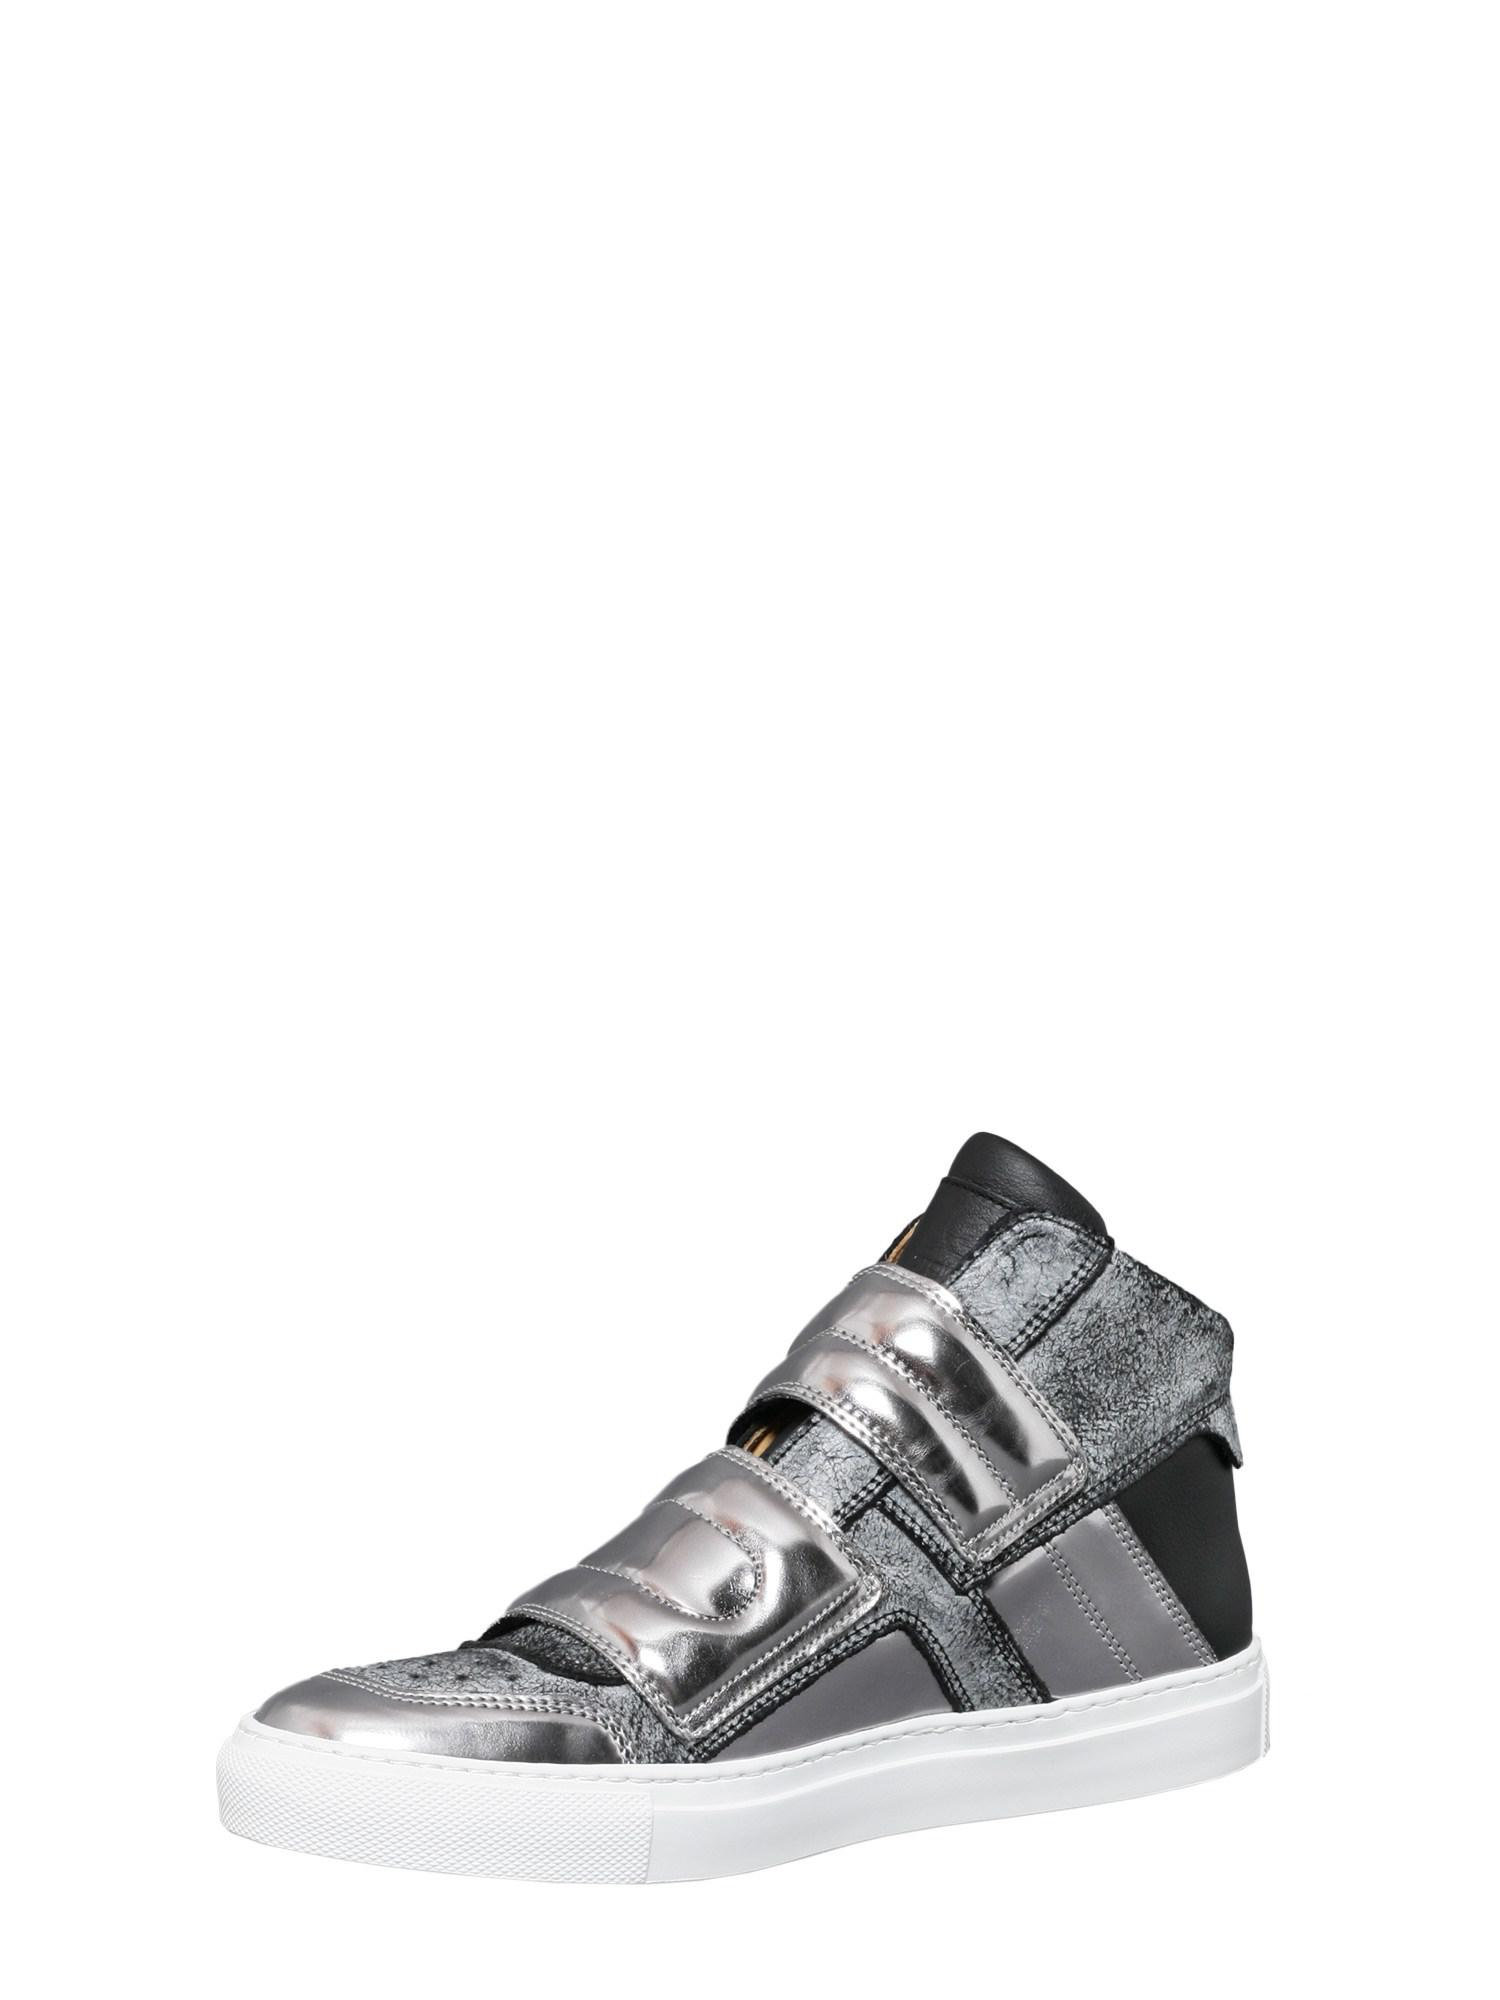 MM6 by Maison Martin Margiela High Top Leather Sneakers With Double Strap in Black